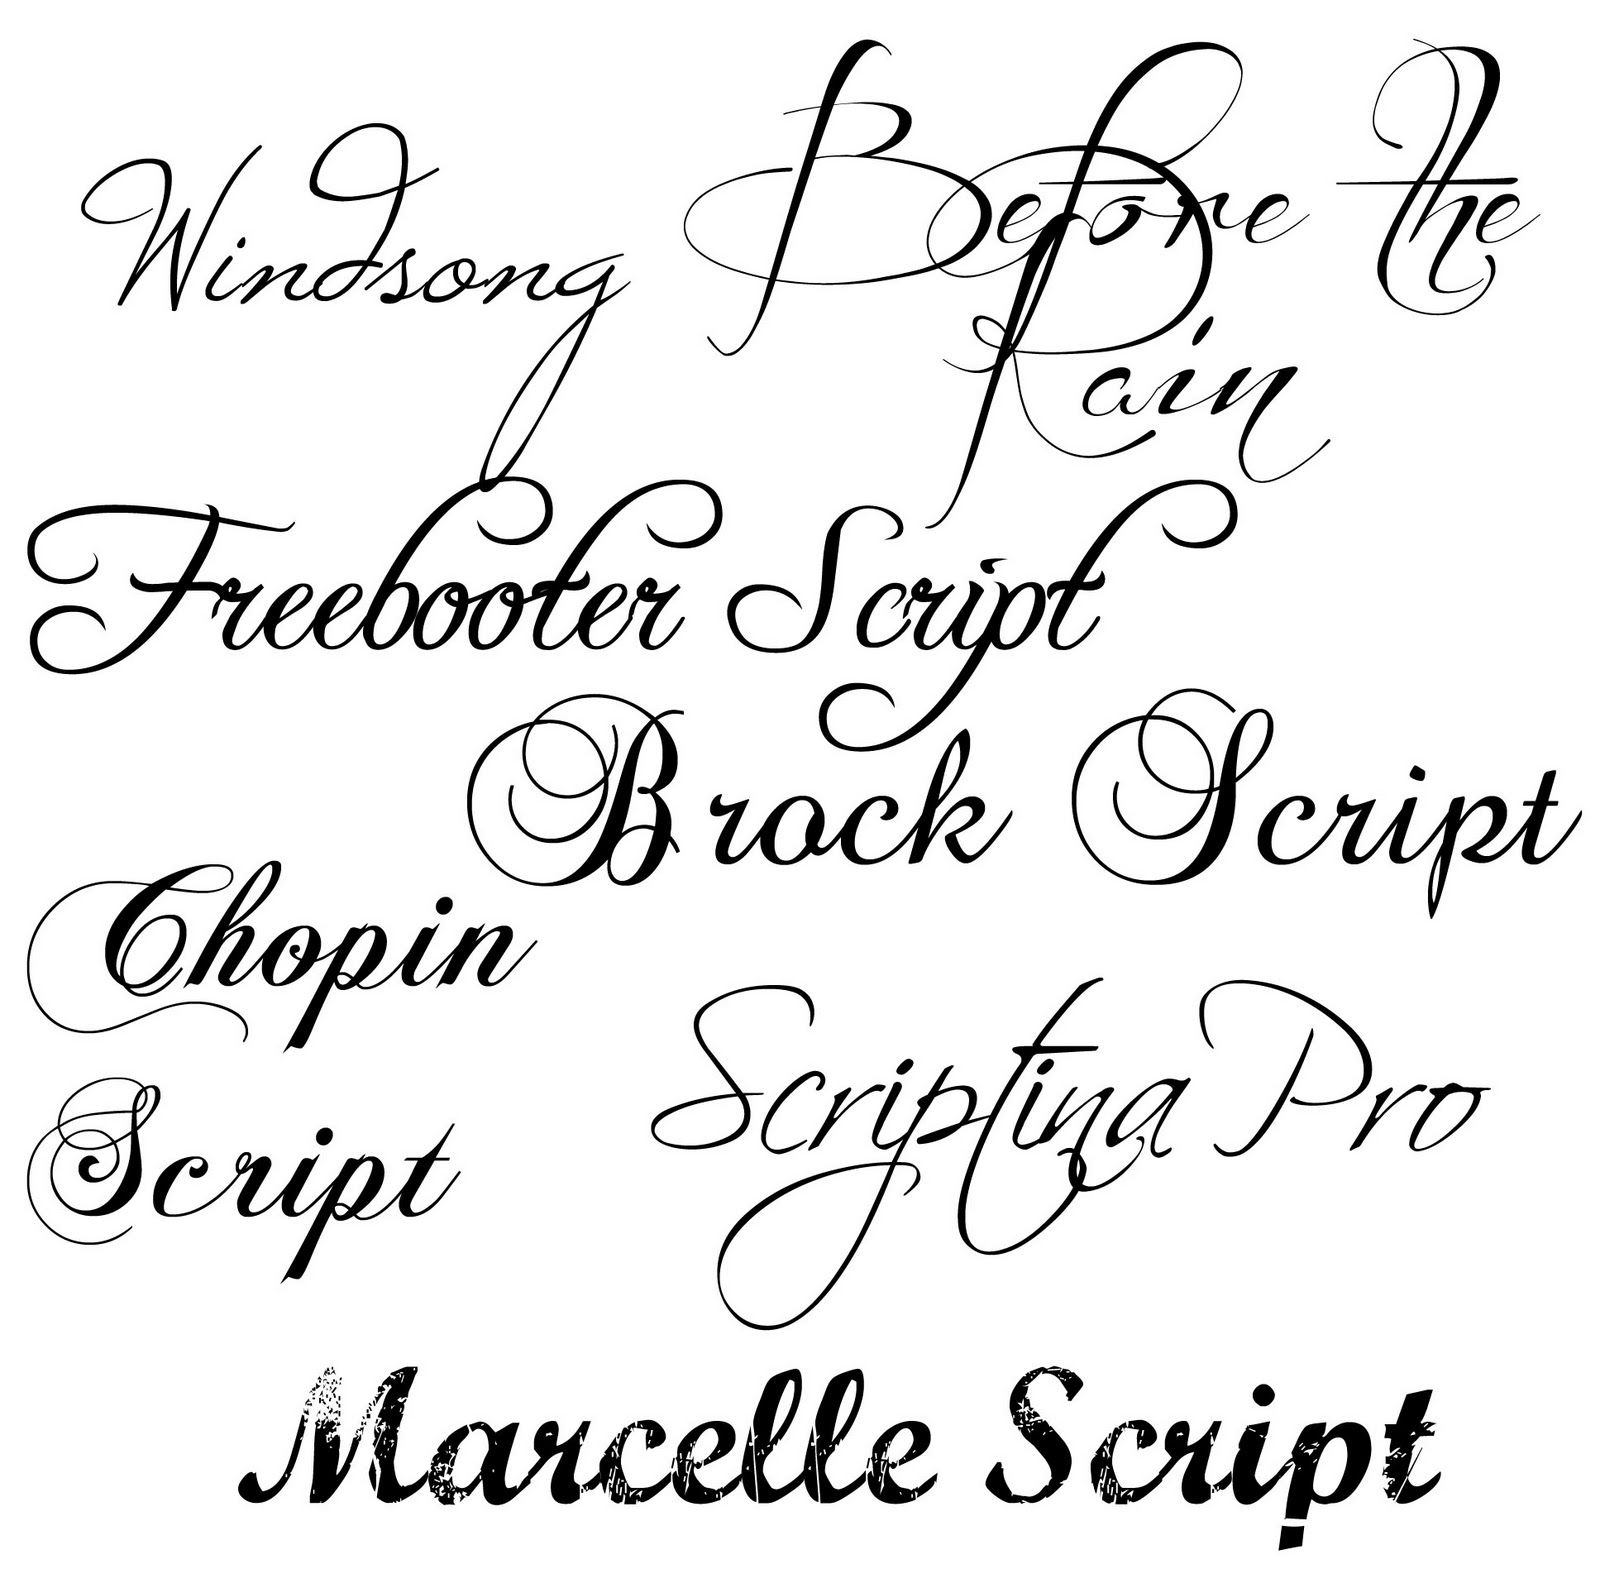 Font Each Individual Font Click On The Link Below The